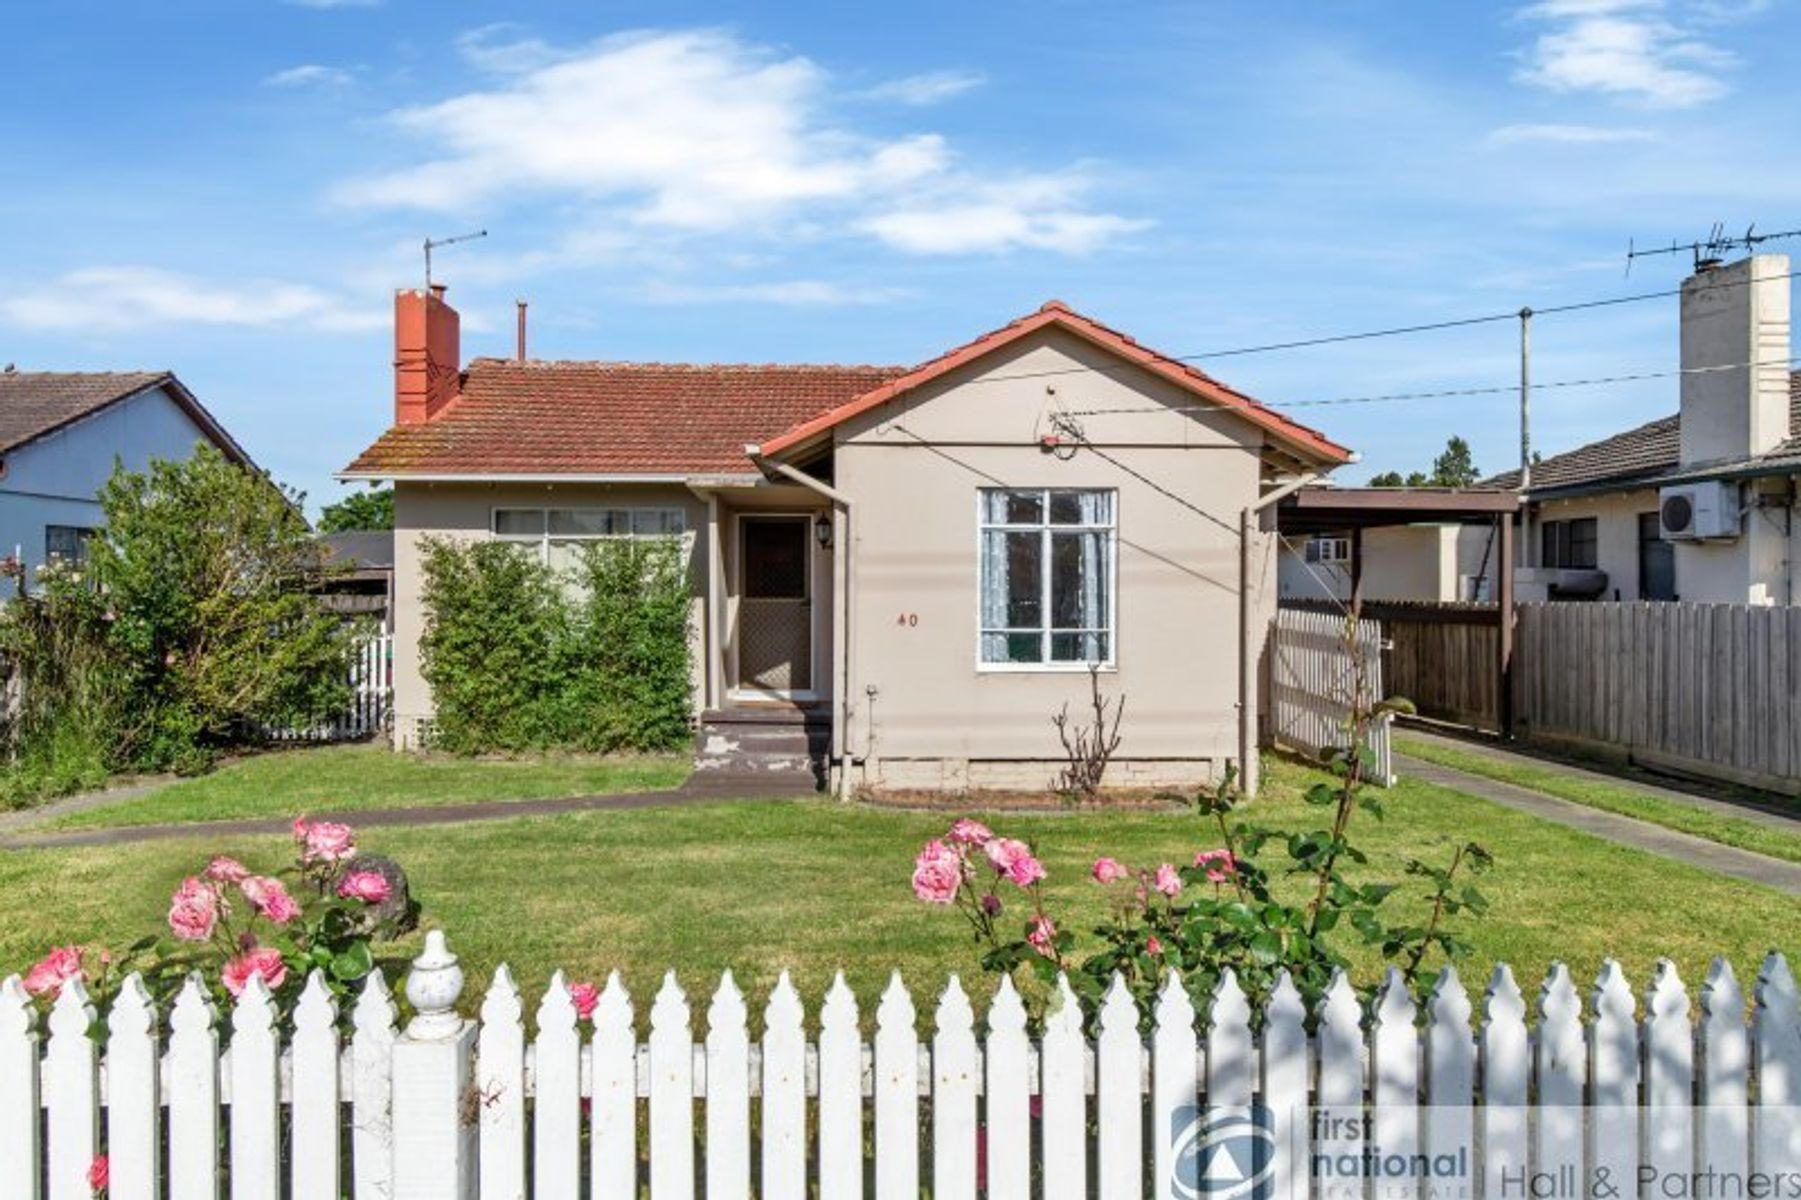 40 Power Road, Doveton, VIC 3177